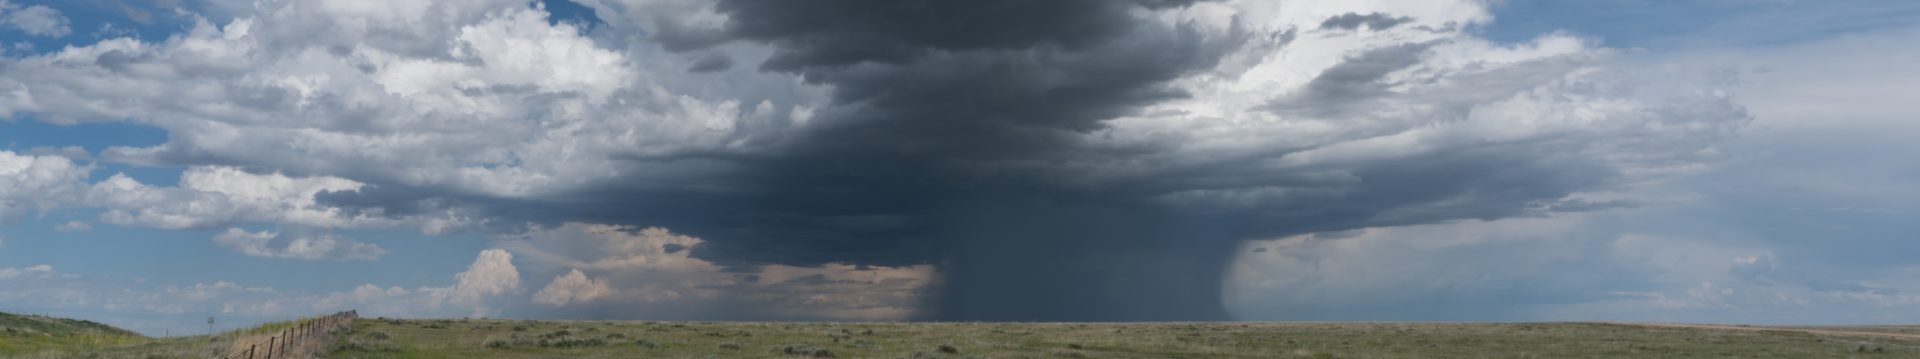 Storm Chasing With Bill